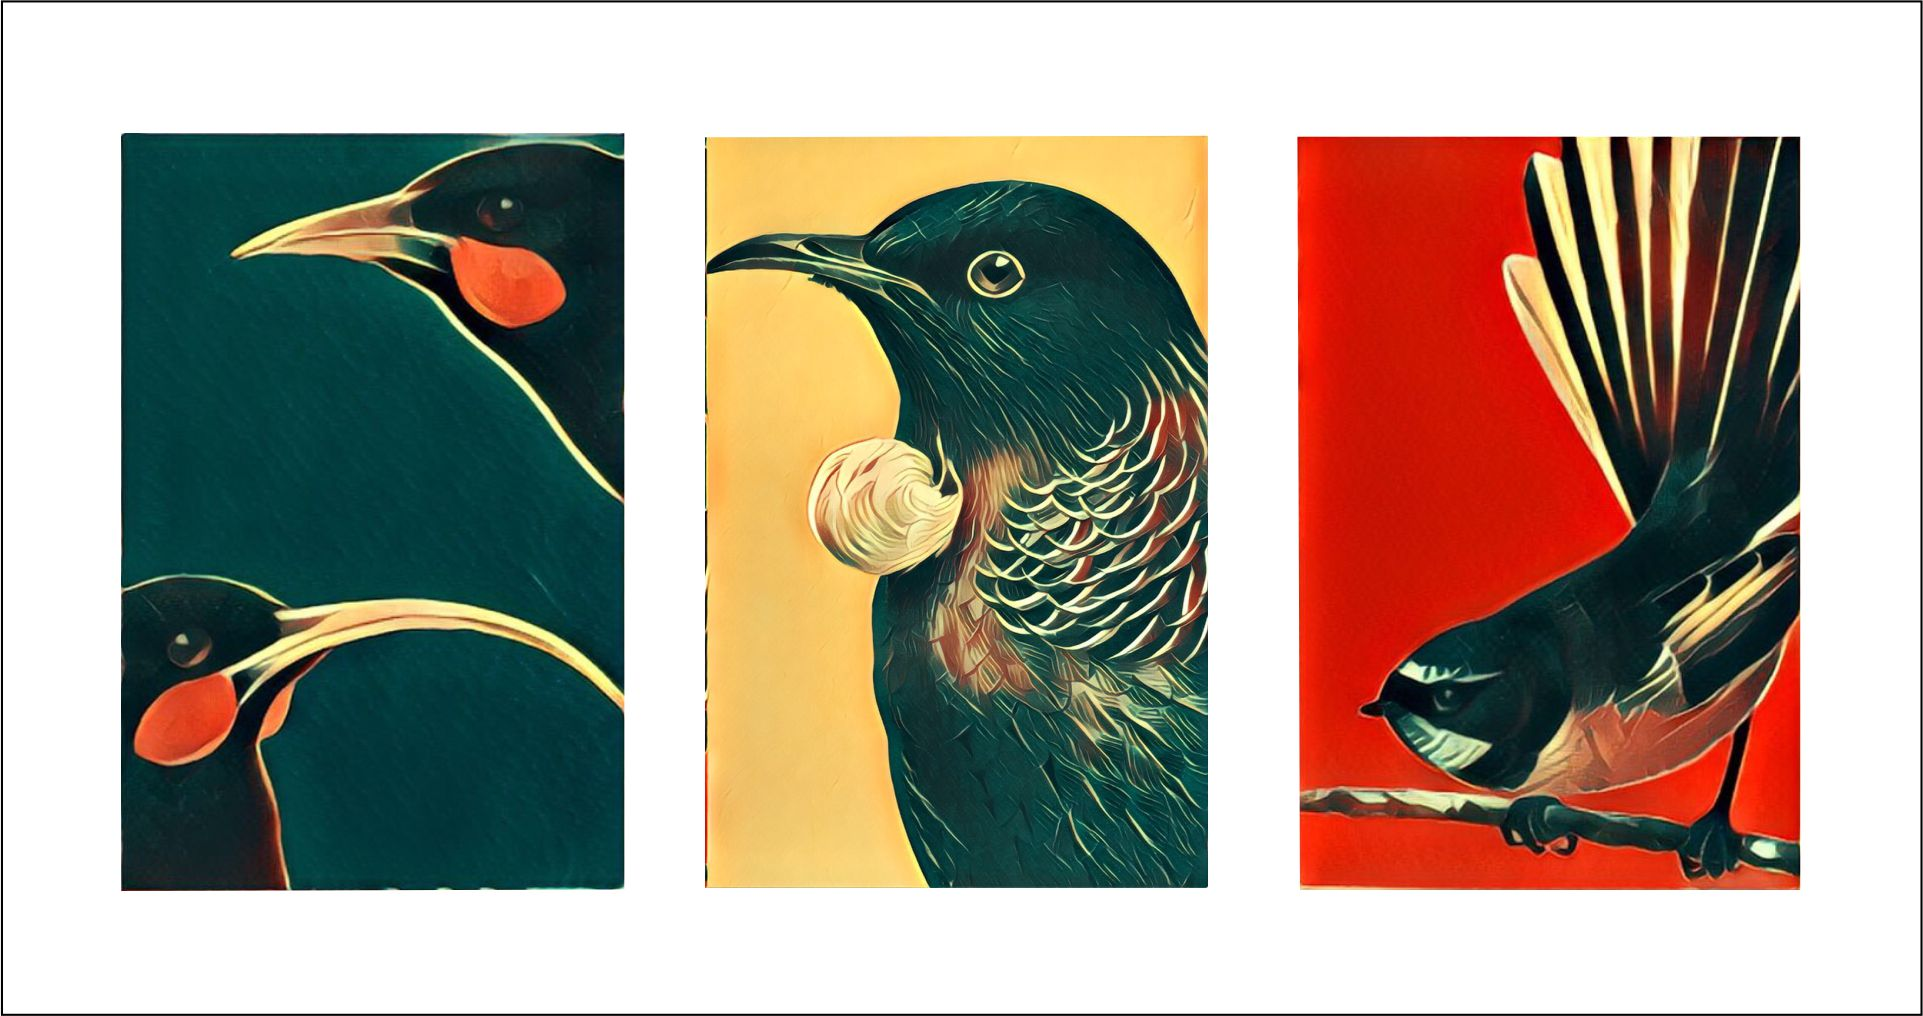 three tiny paintings of three different birds of new zealand. There are three different colored backgrounds, navy blue, red, and custard yellow.